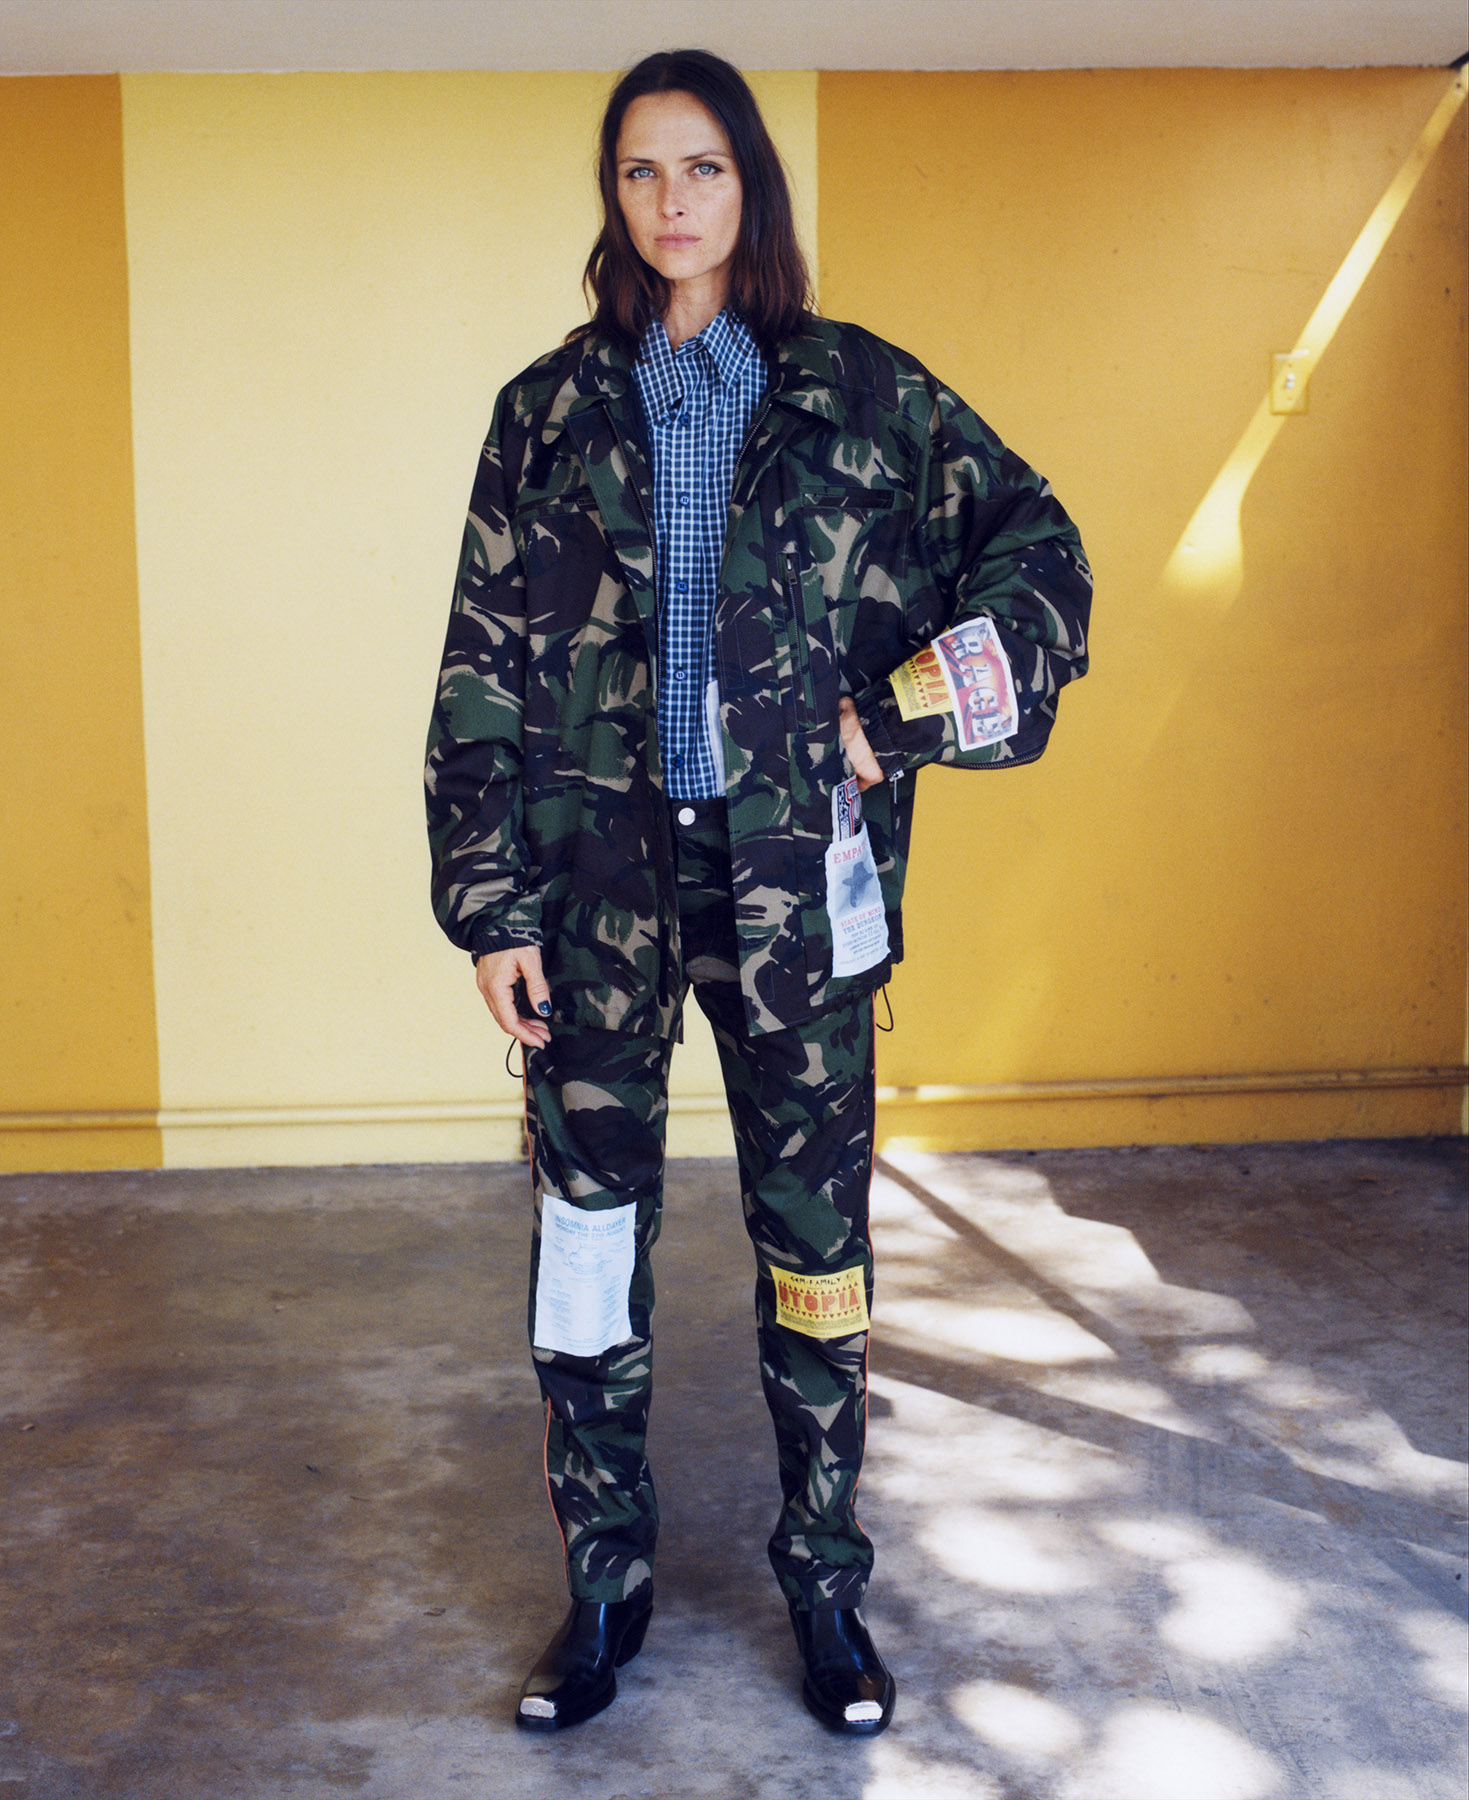 Nordstrom Fall 2018 Ad Campaign by Zoe Ghertner